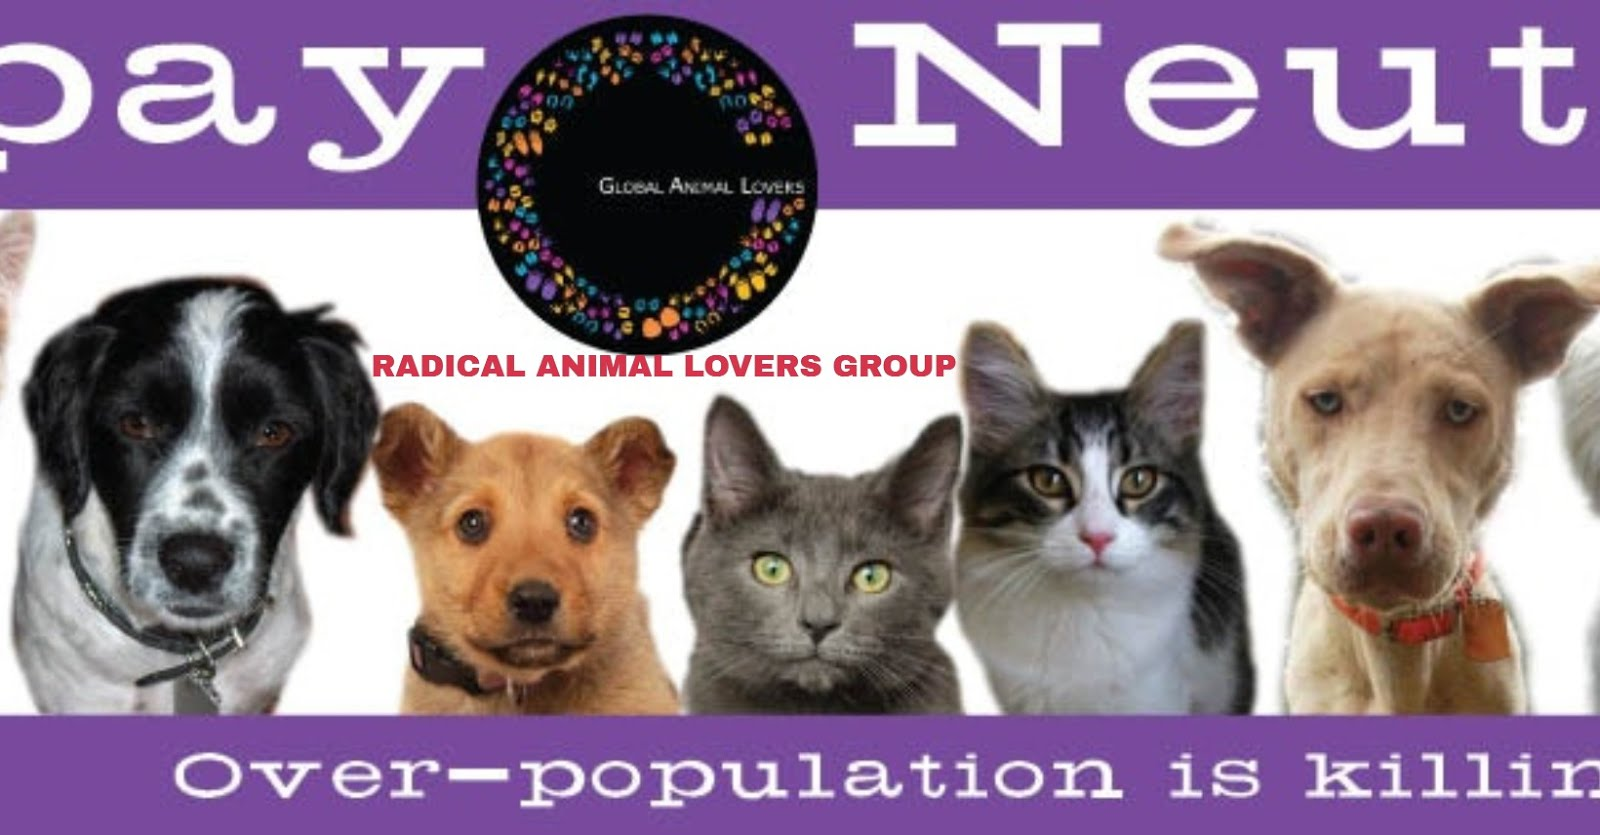 RADICAL ANIMAL LOVERS GROUP